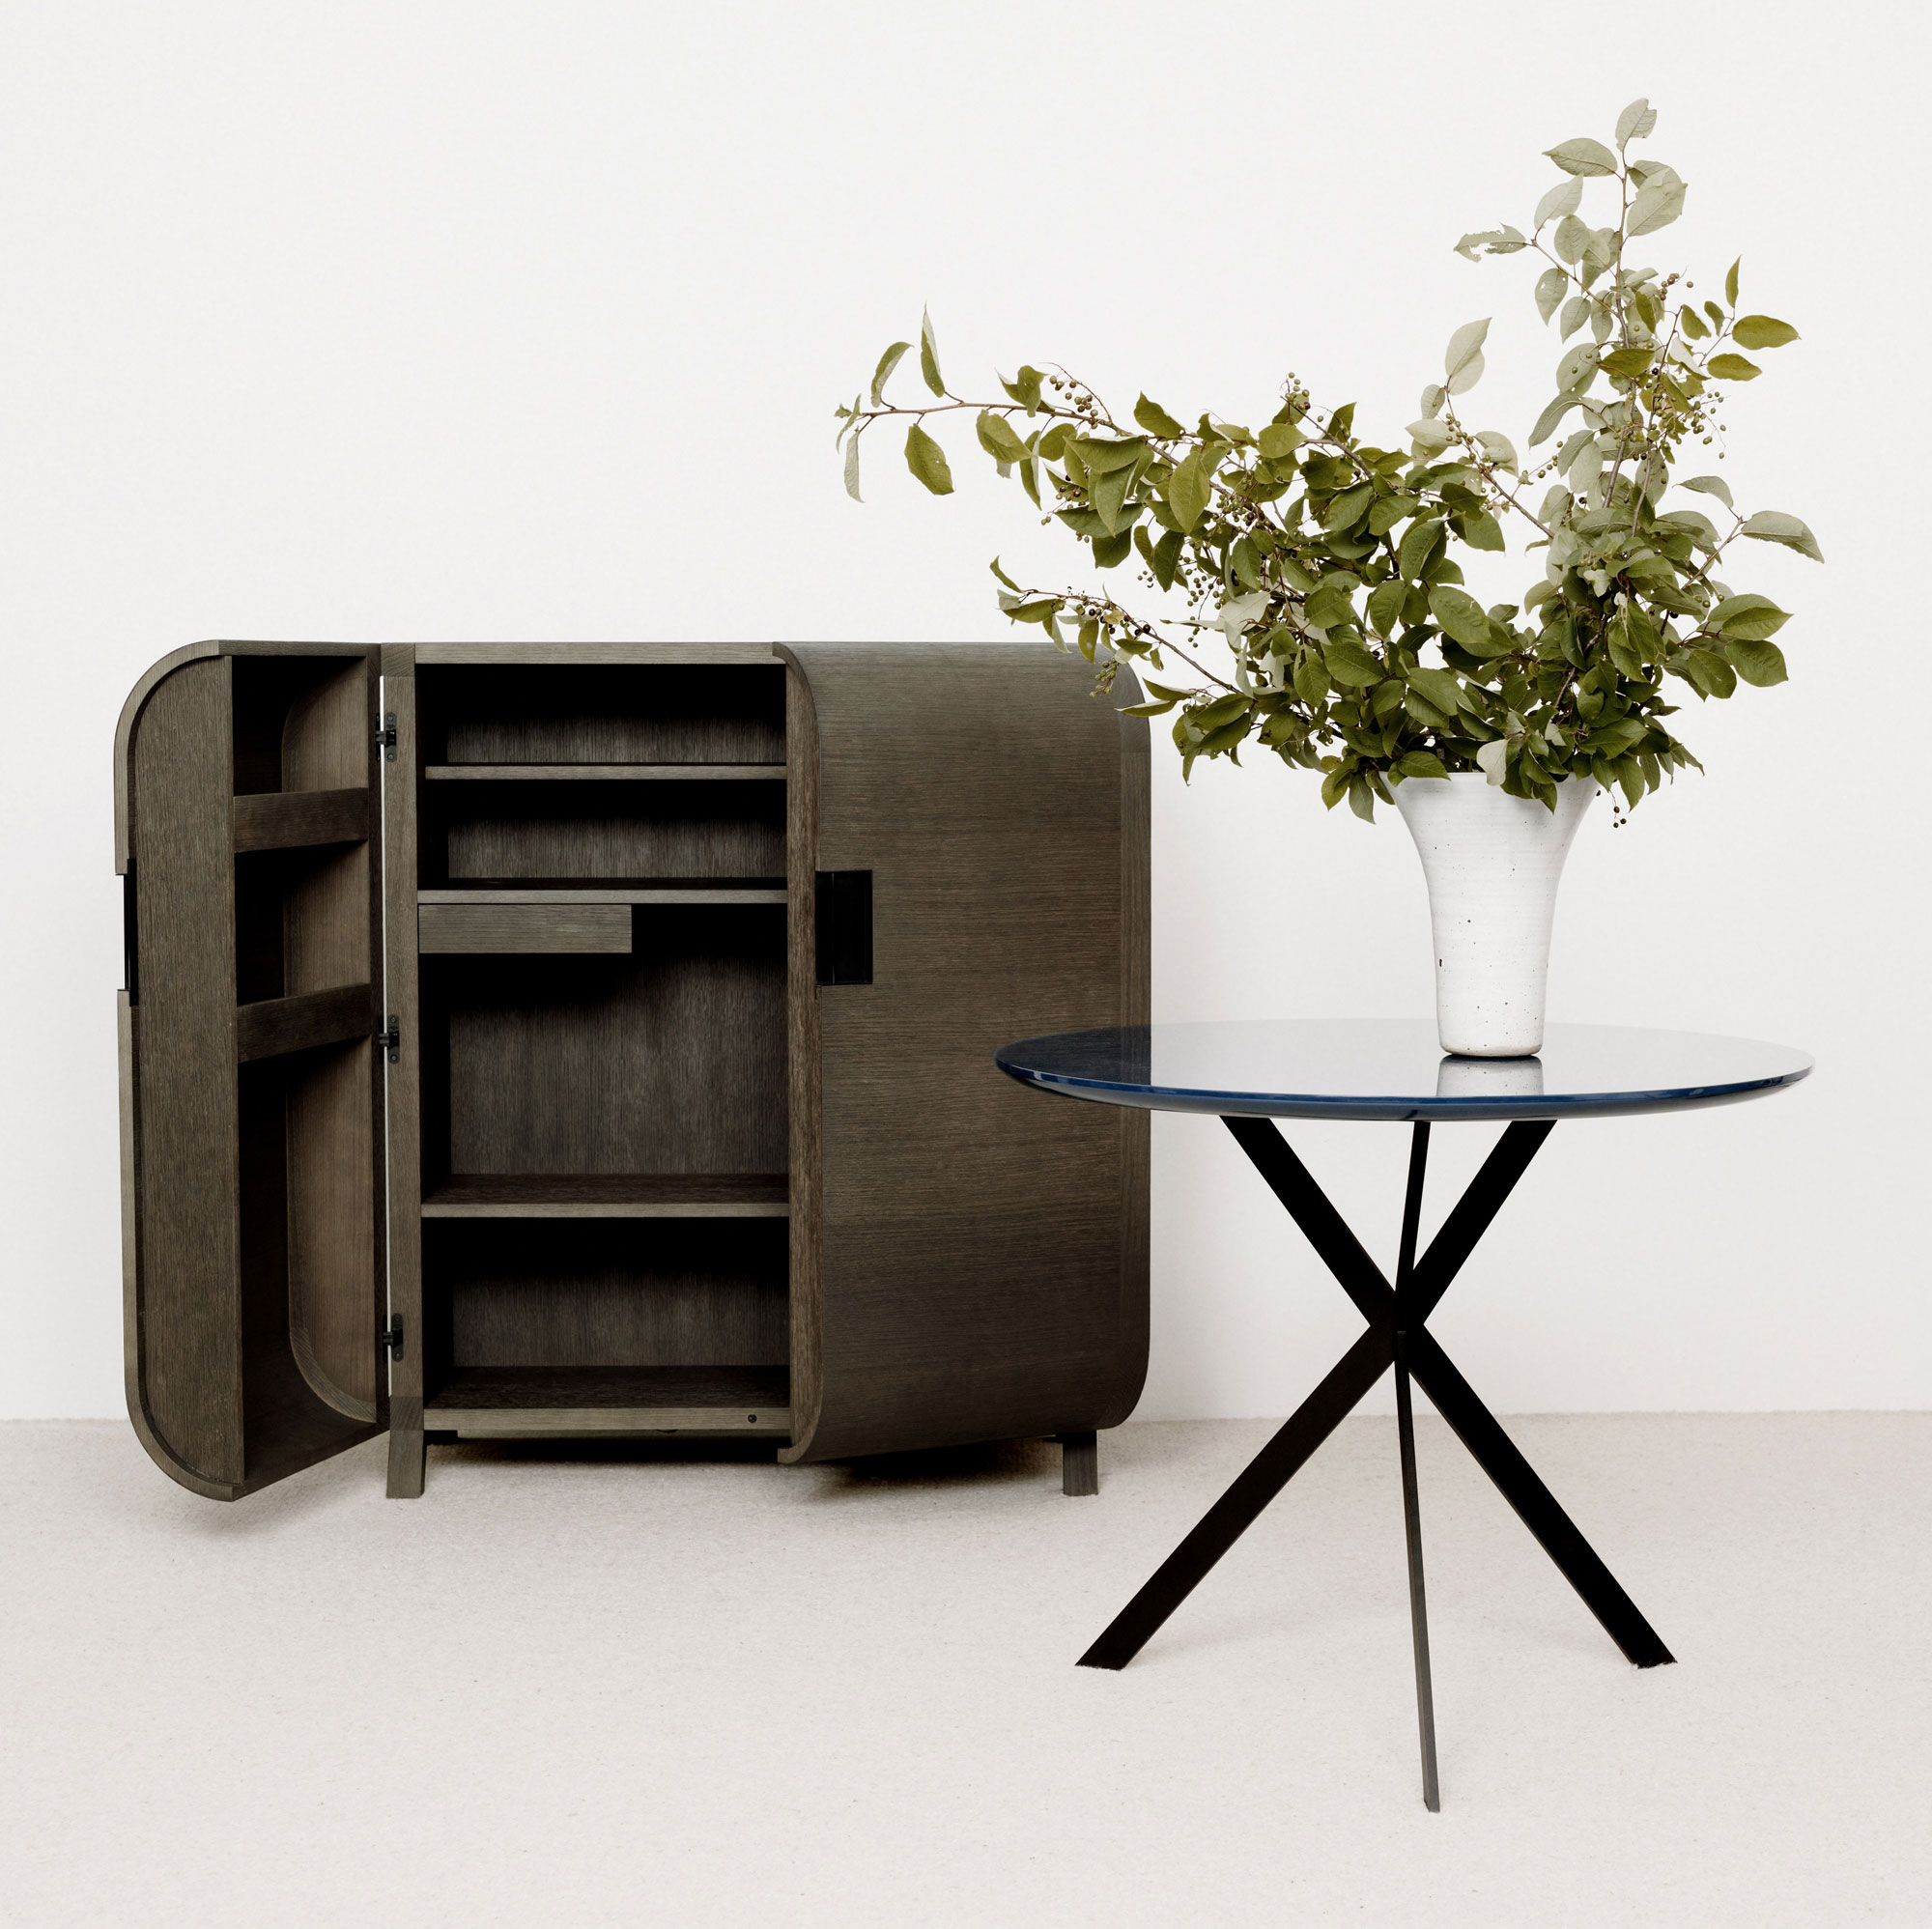 Meuble Ron Table Ile 2 - Christophe Delcourt